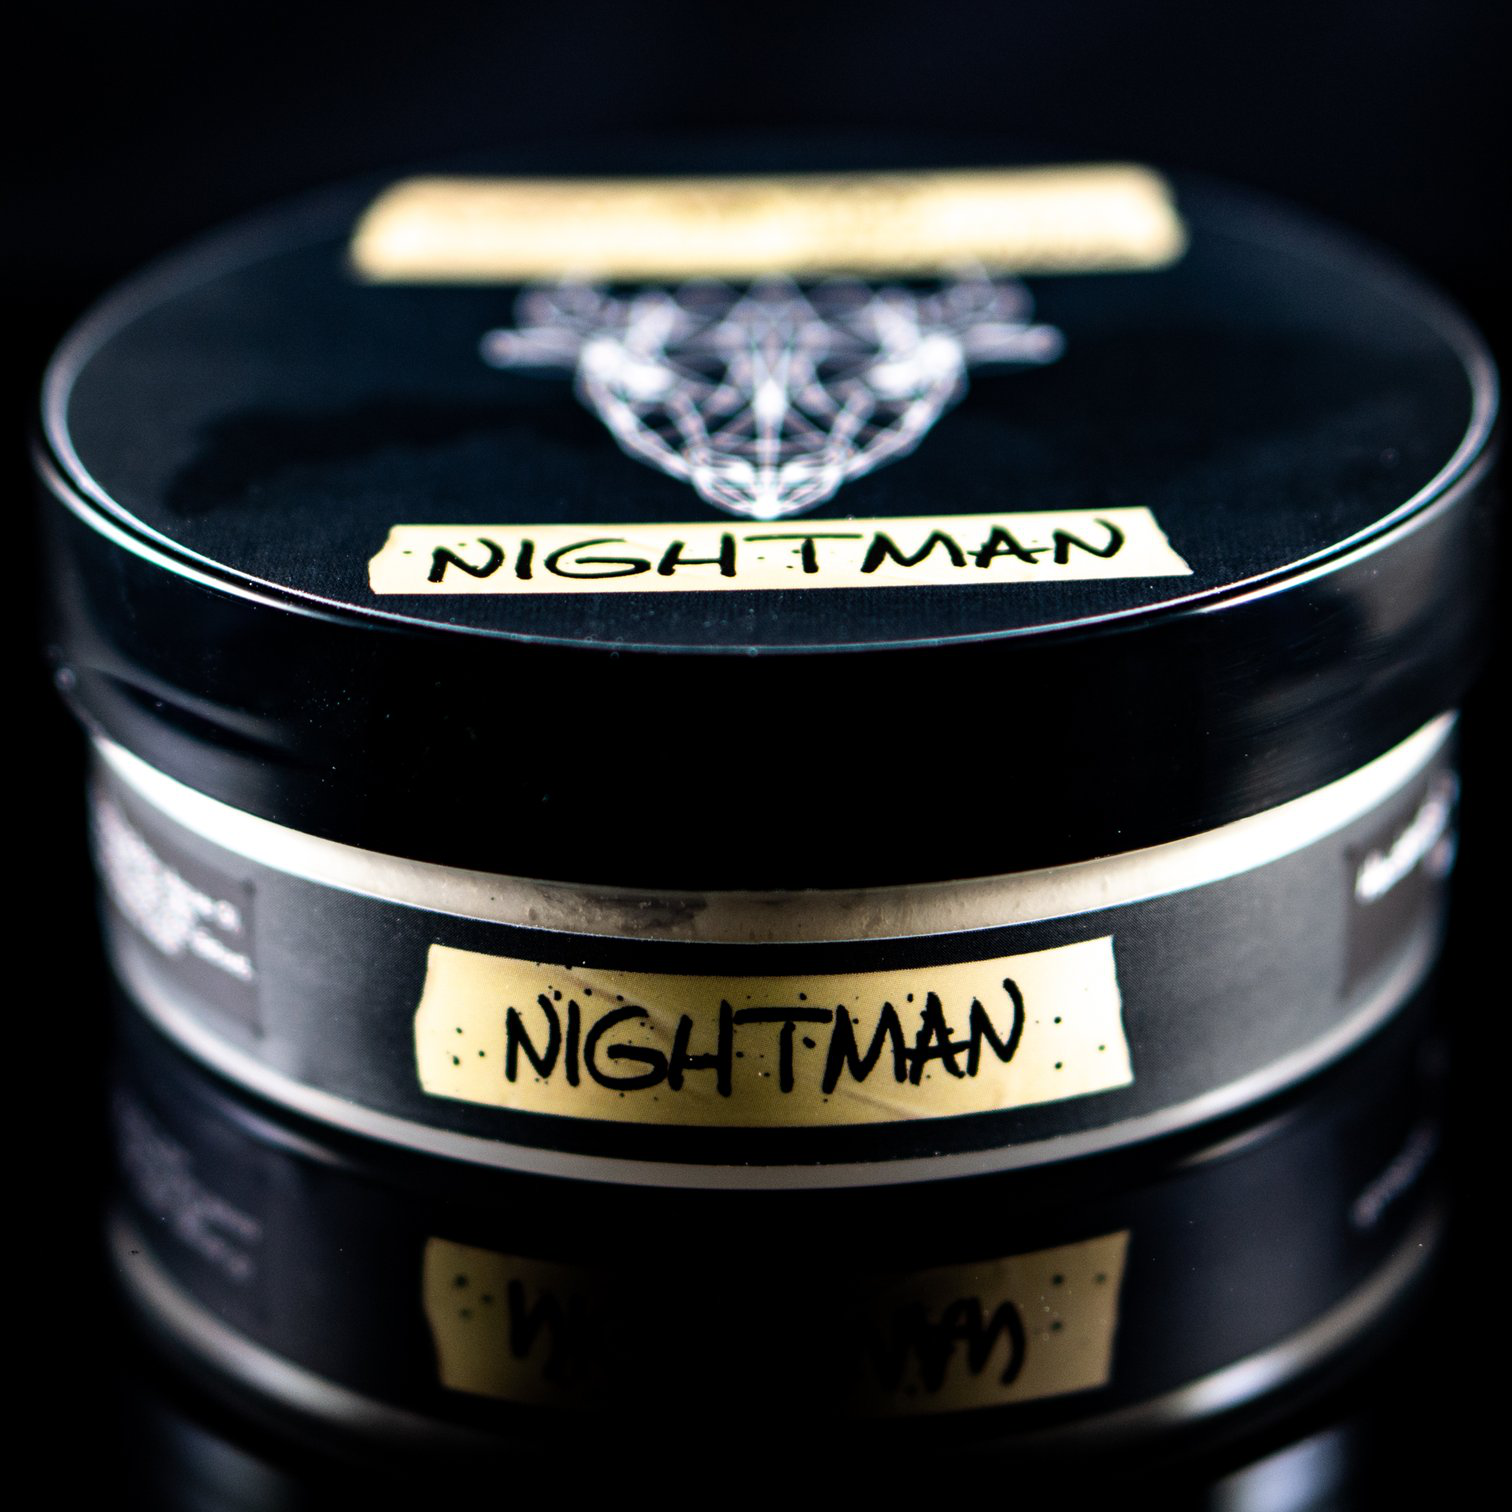 Declaration Grooming - Nightman - Soap image